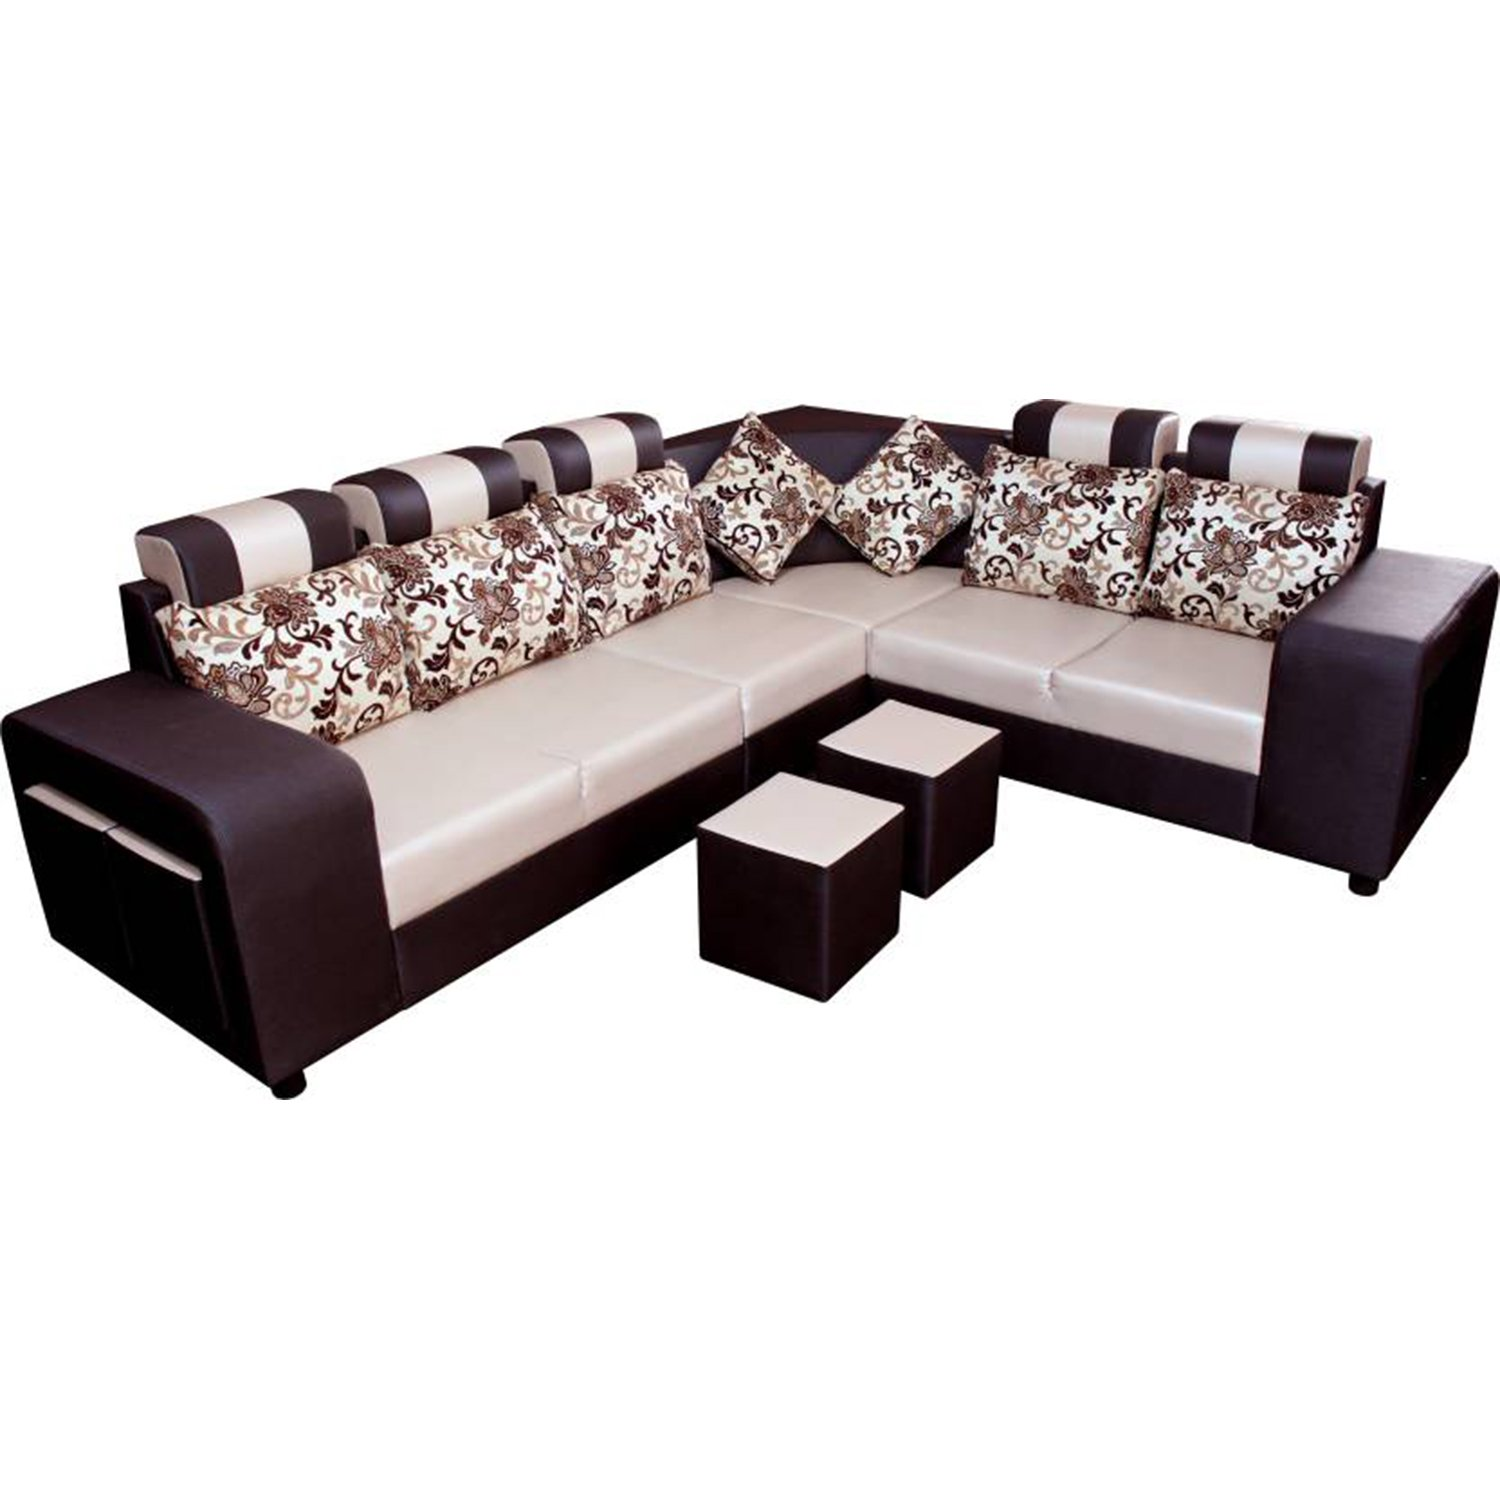 Funterior 6 seater l shape sectional sofa set with puffy dark brown amazon in home kitchen